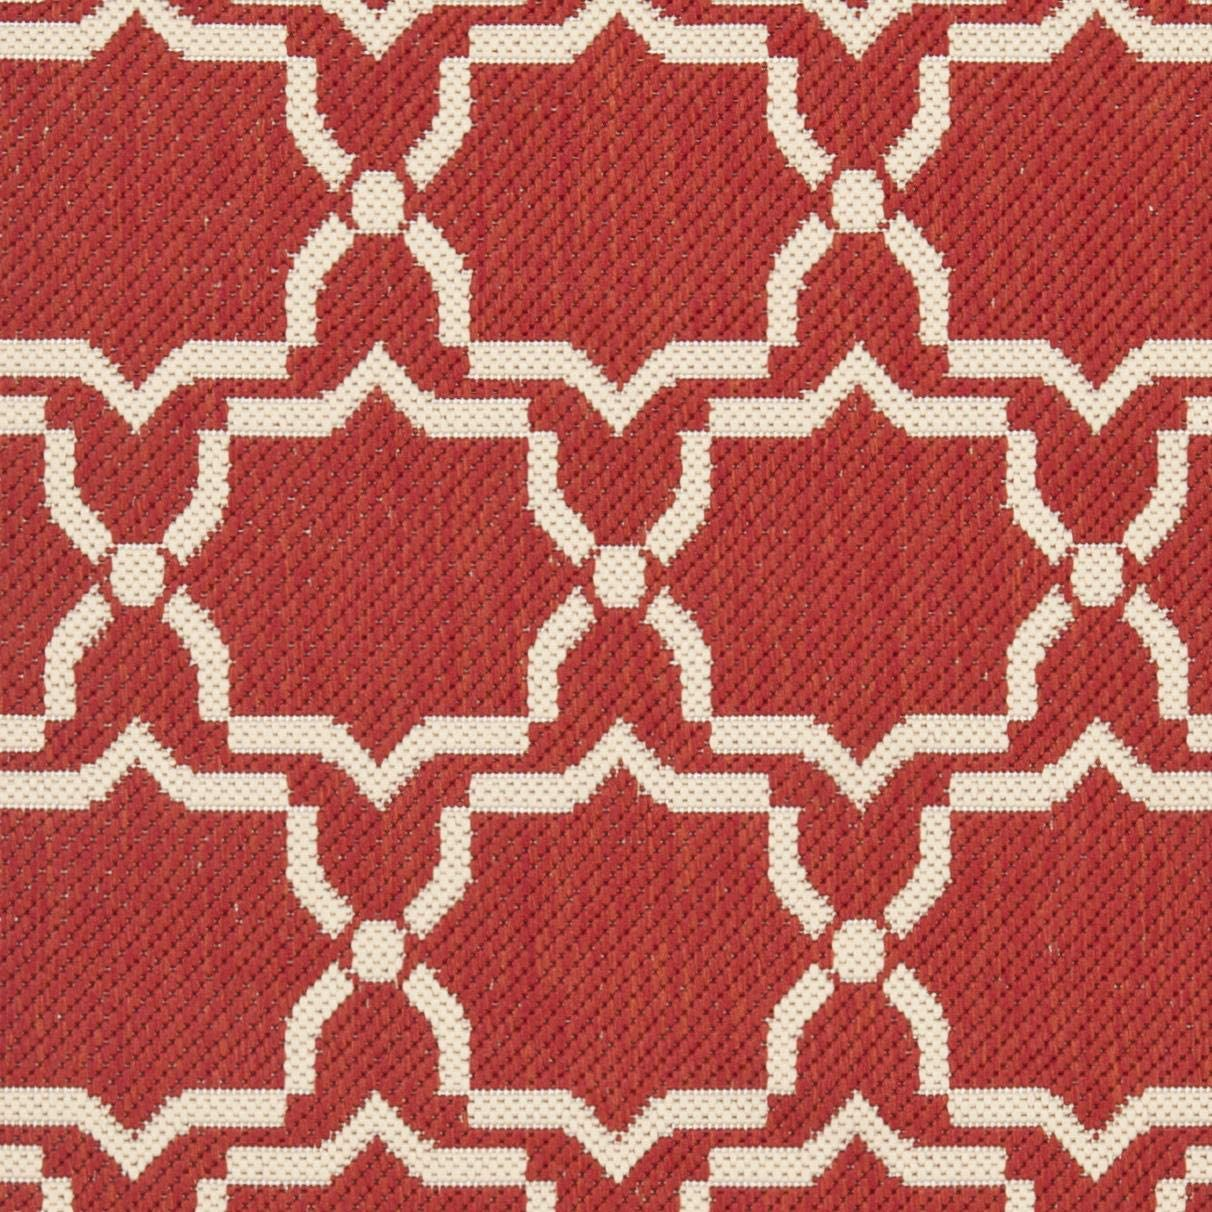 Safavieh Courtyard Collection CY6916-248 Red and Bone Indoor Outdoor Area Rug 2 x 3 7